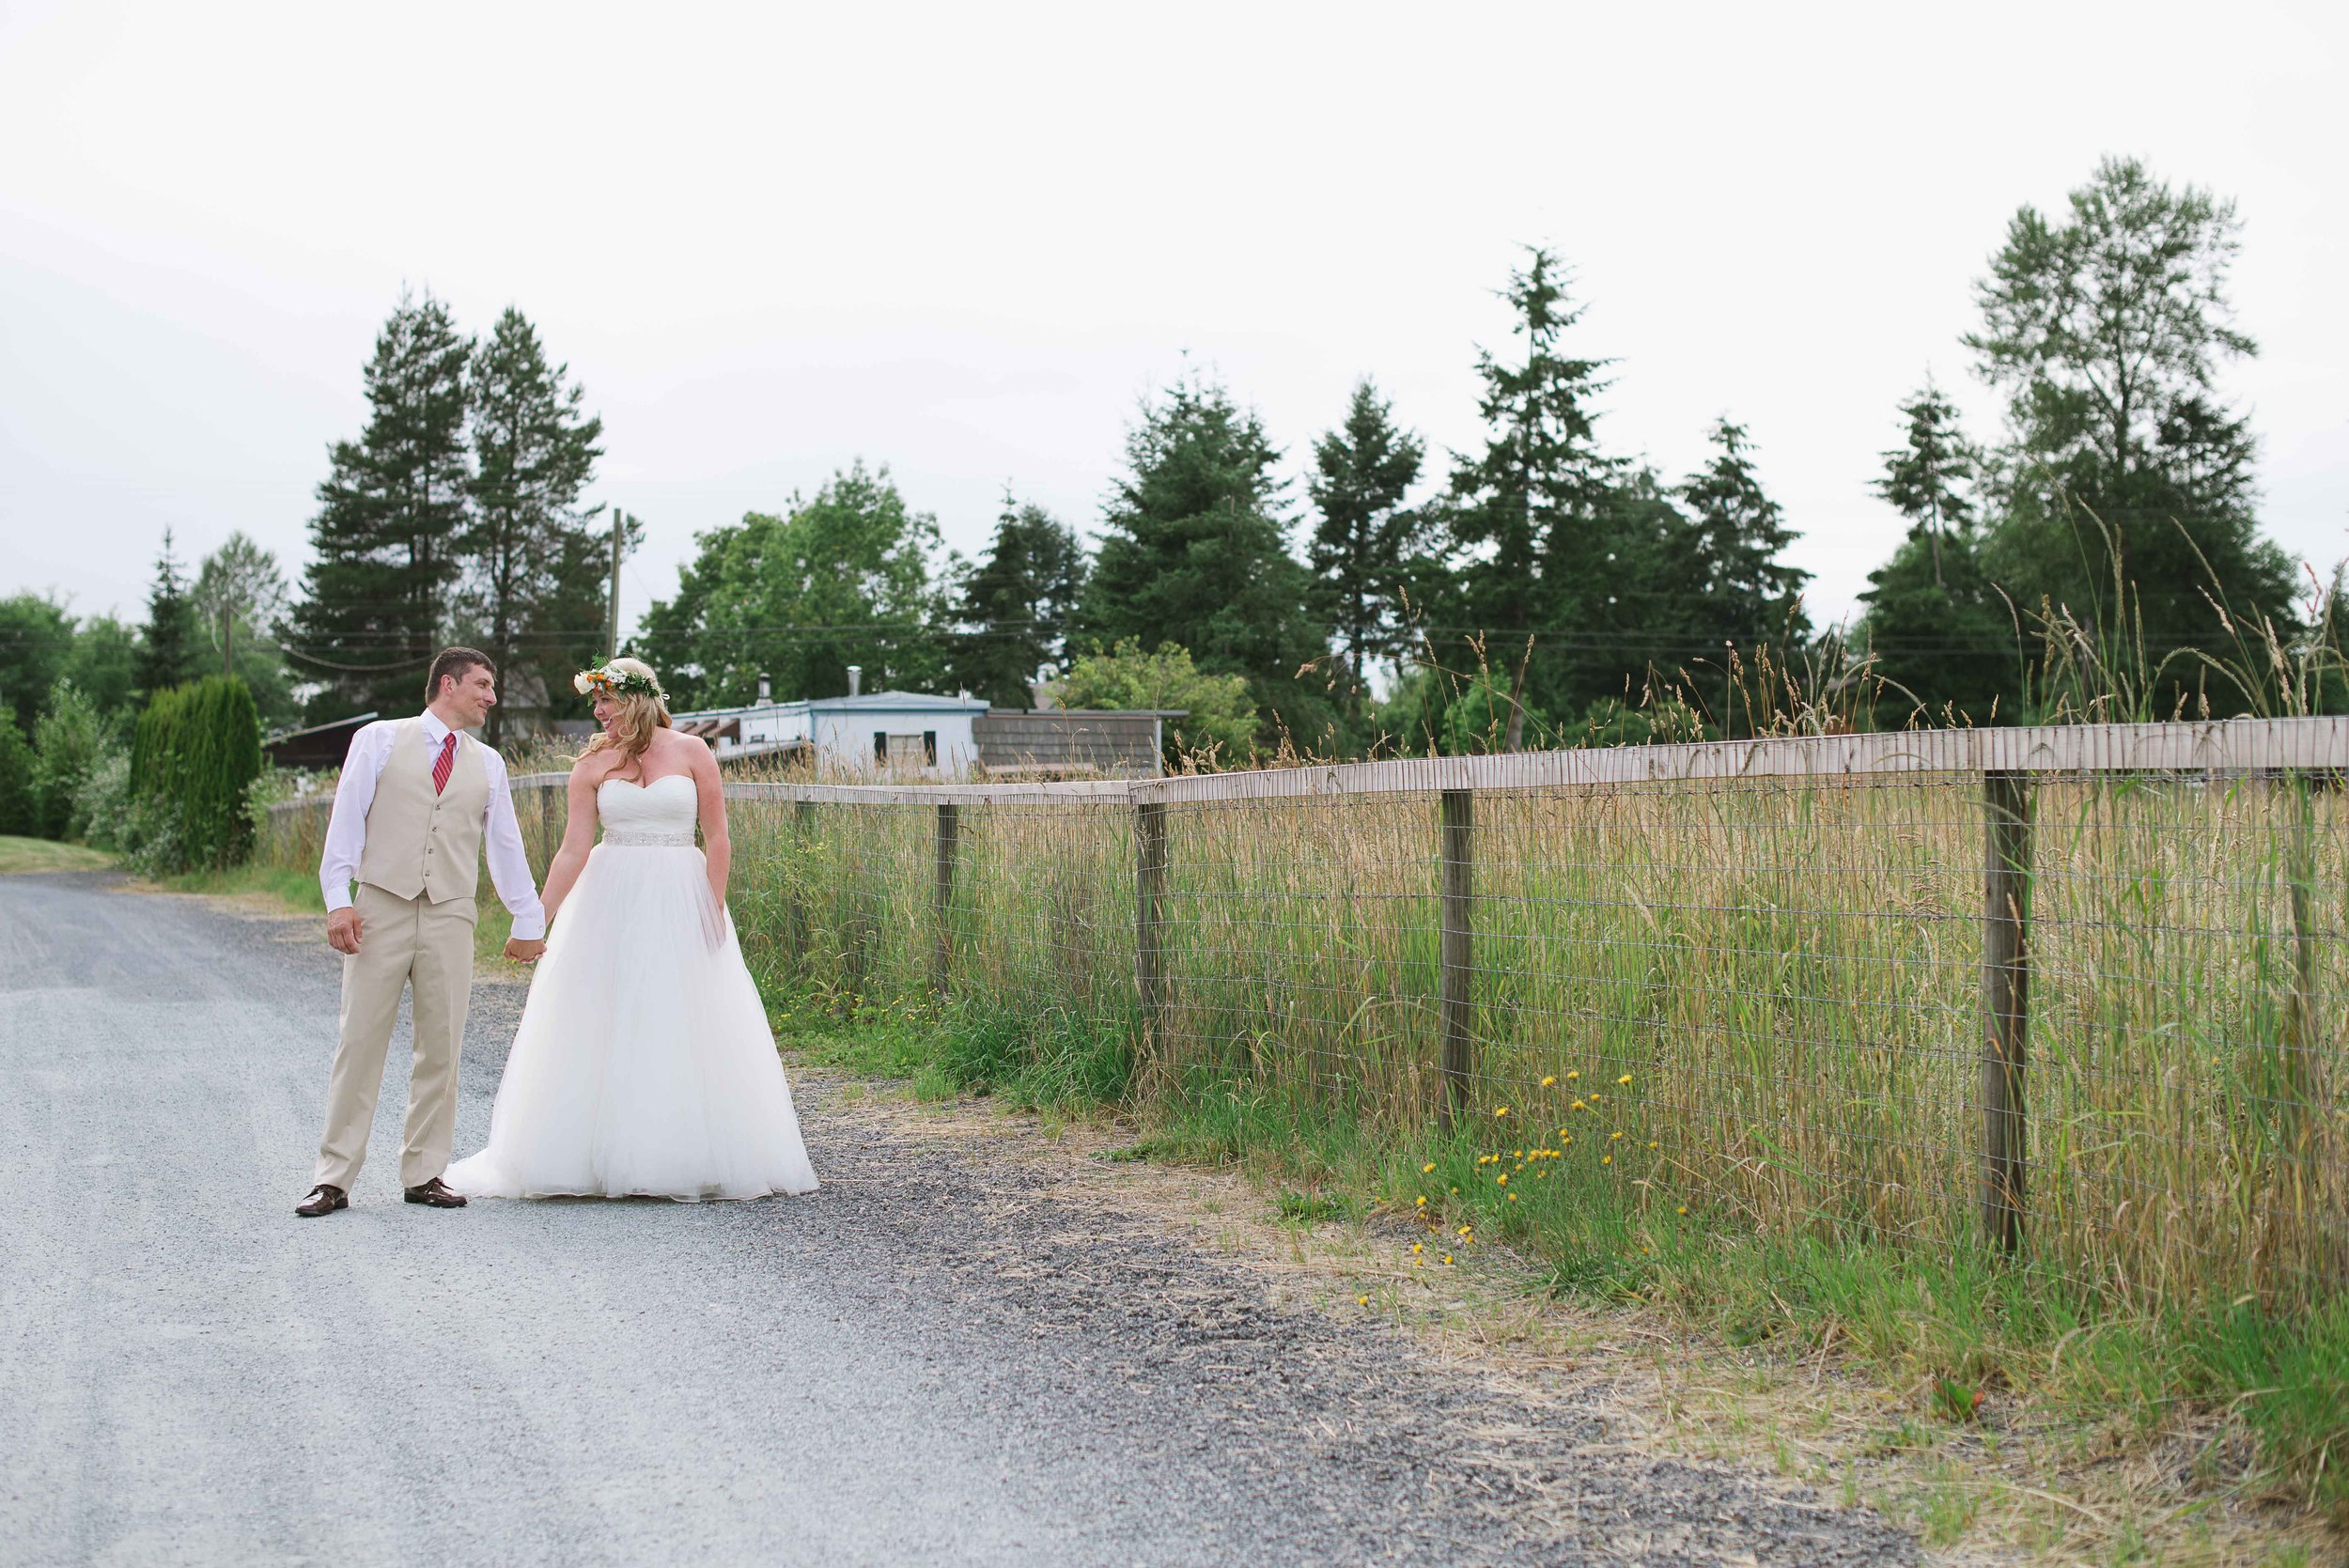 Langley_Wedding_Second Shooting_Photography_Vancouver-14.jpg